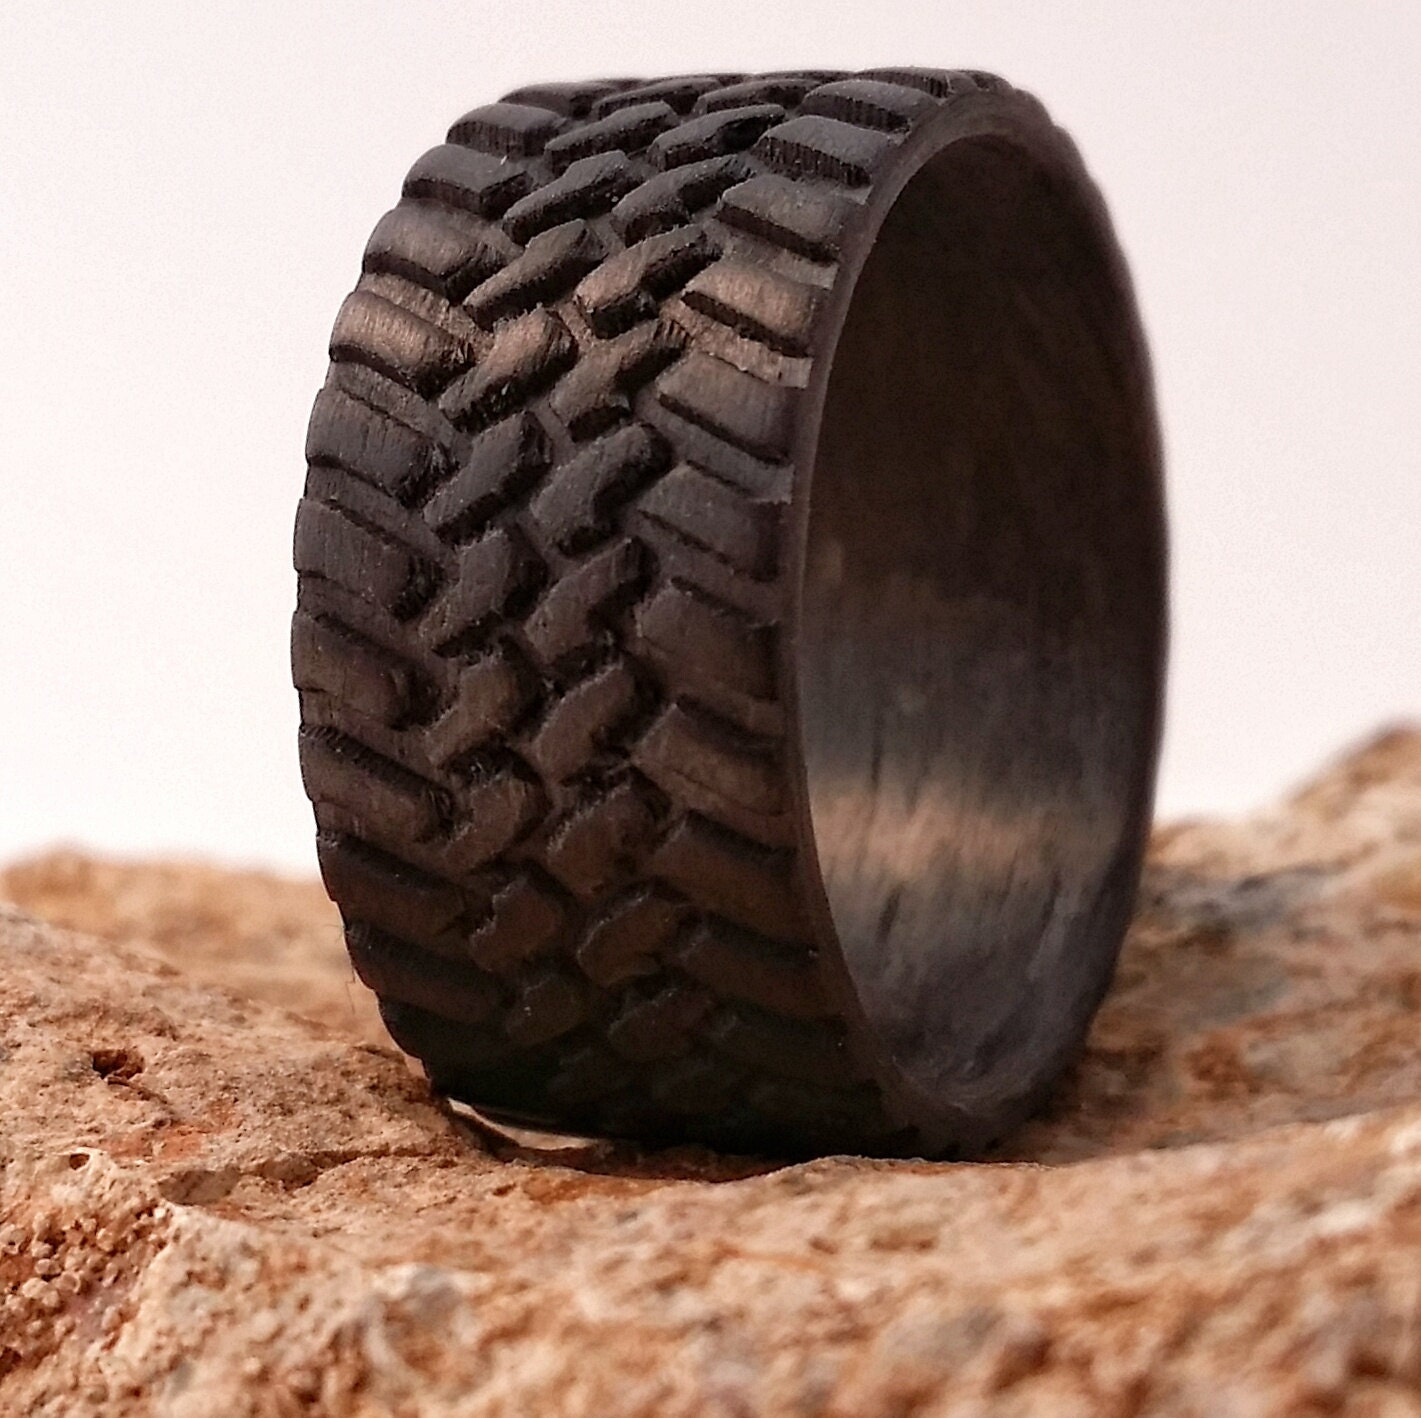 off road 10mm wide carbon fiber tread ring strong light weight - Mud Tire Wedding Rings